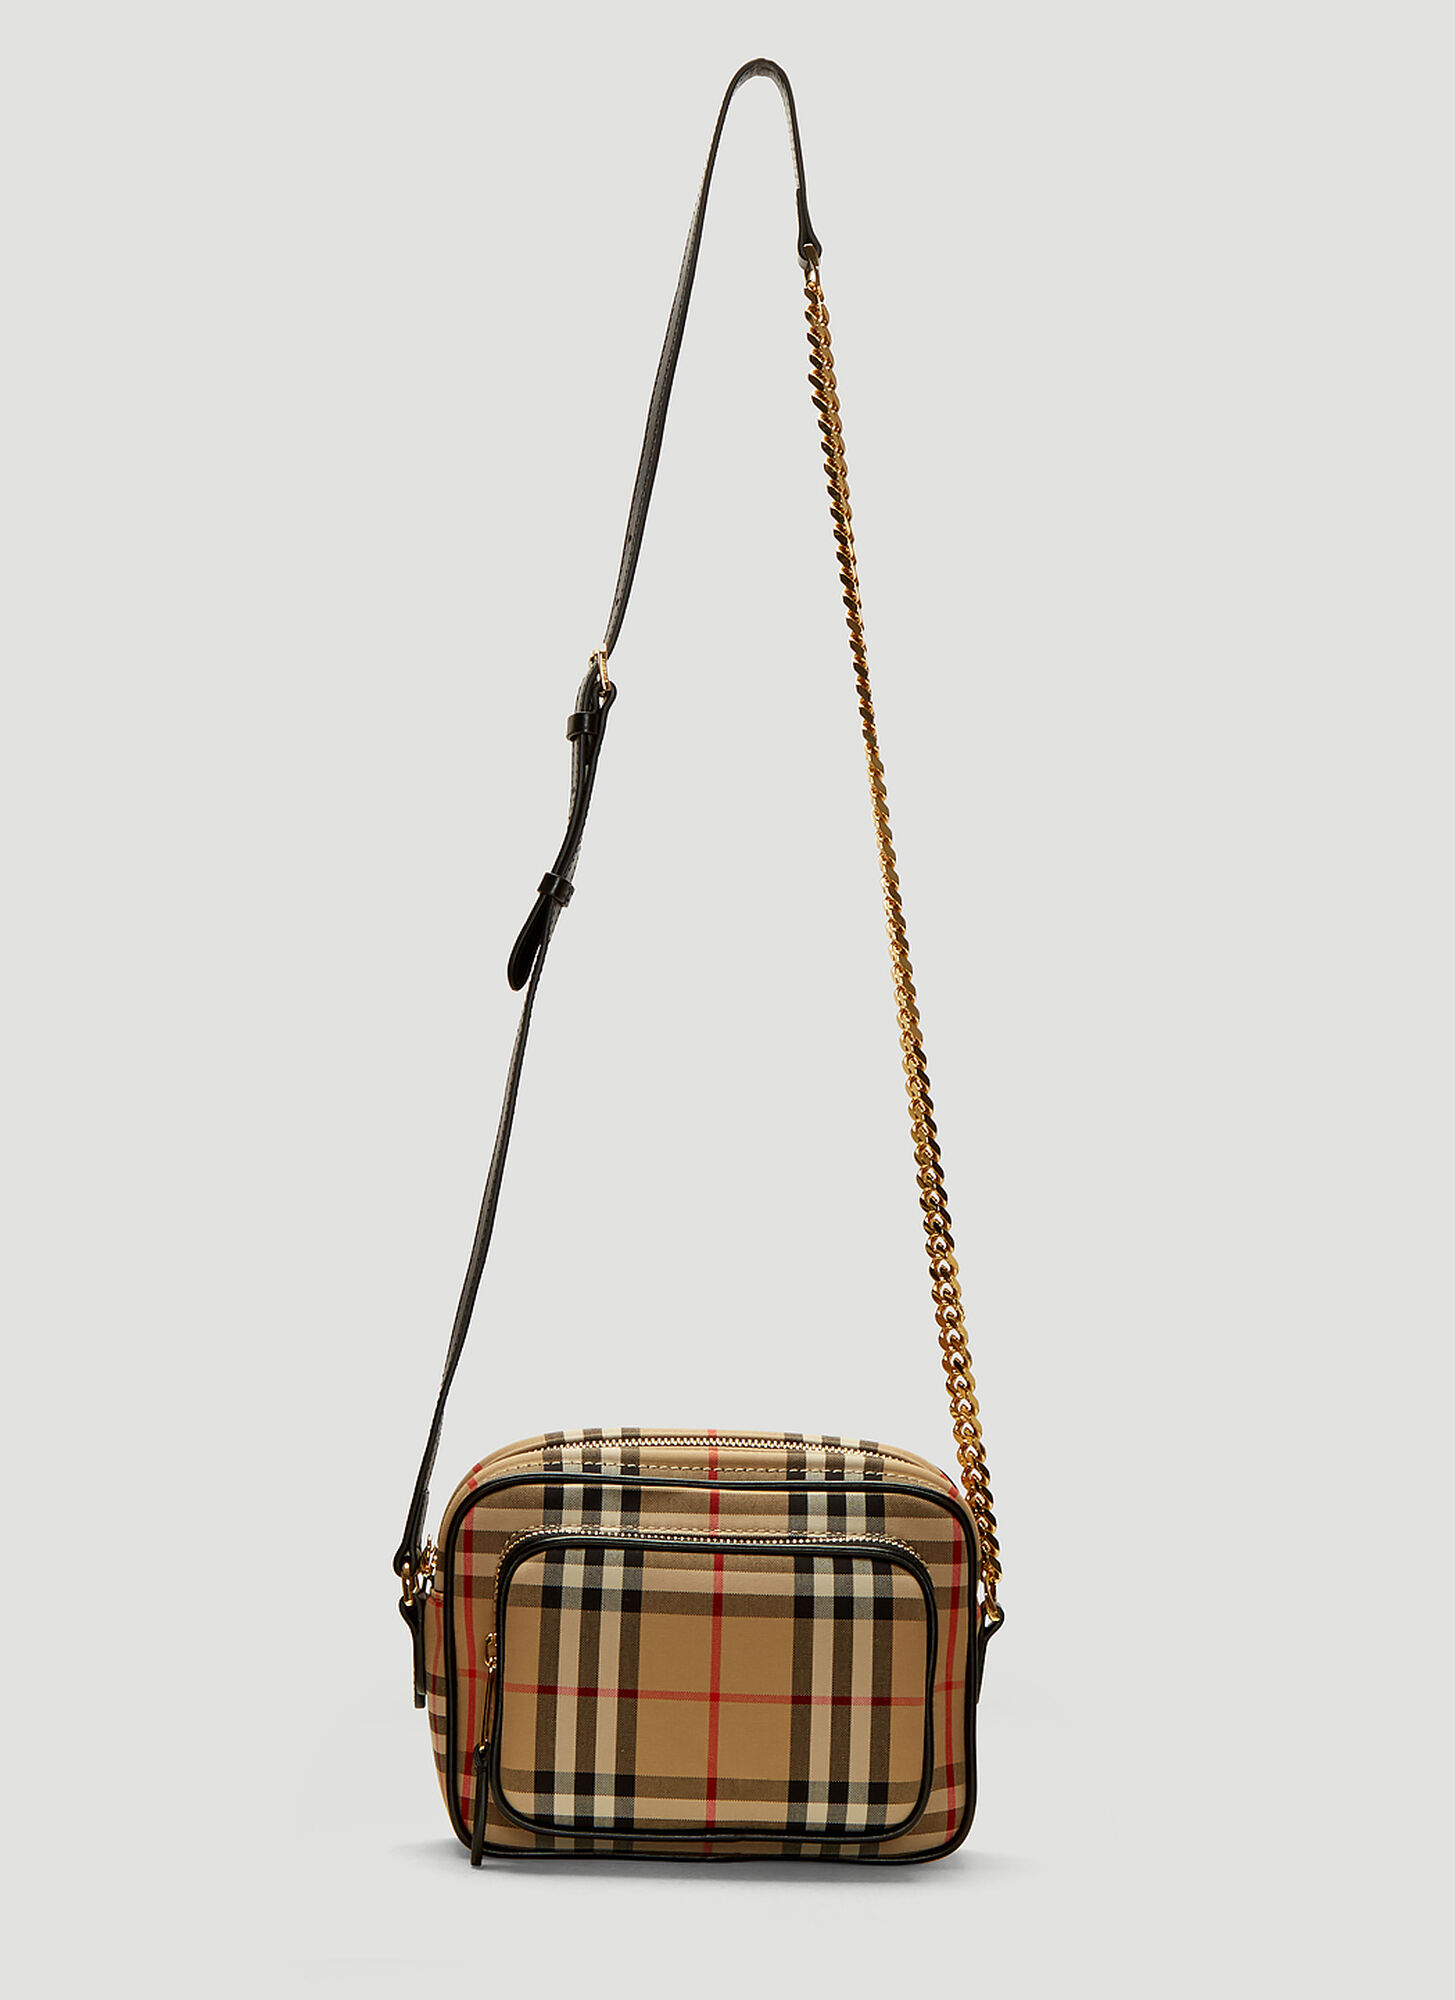 Burberry Vintage Check Camera Bag in Beige